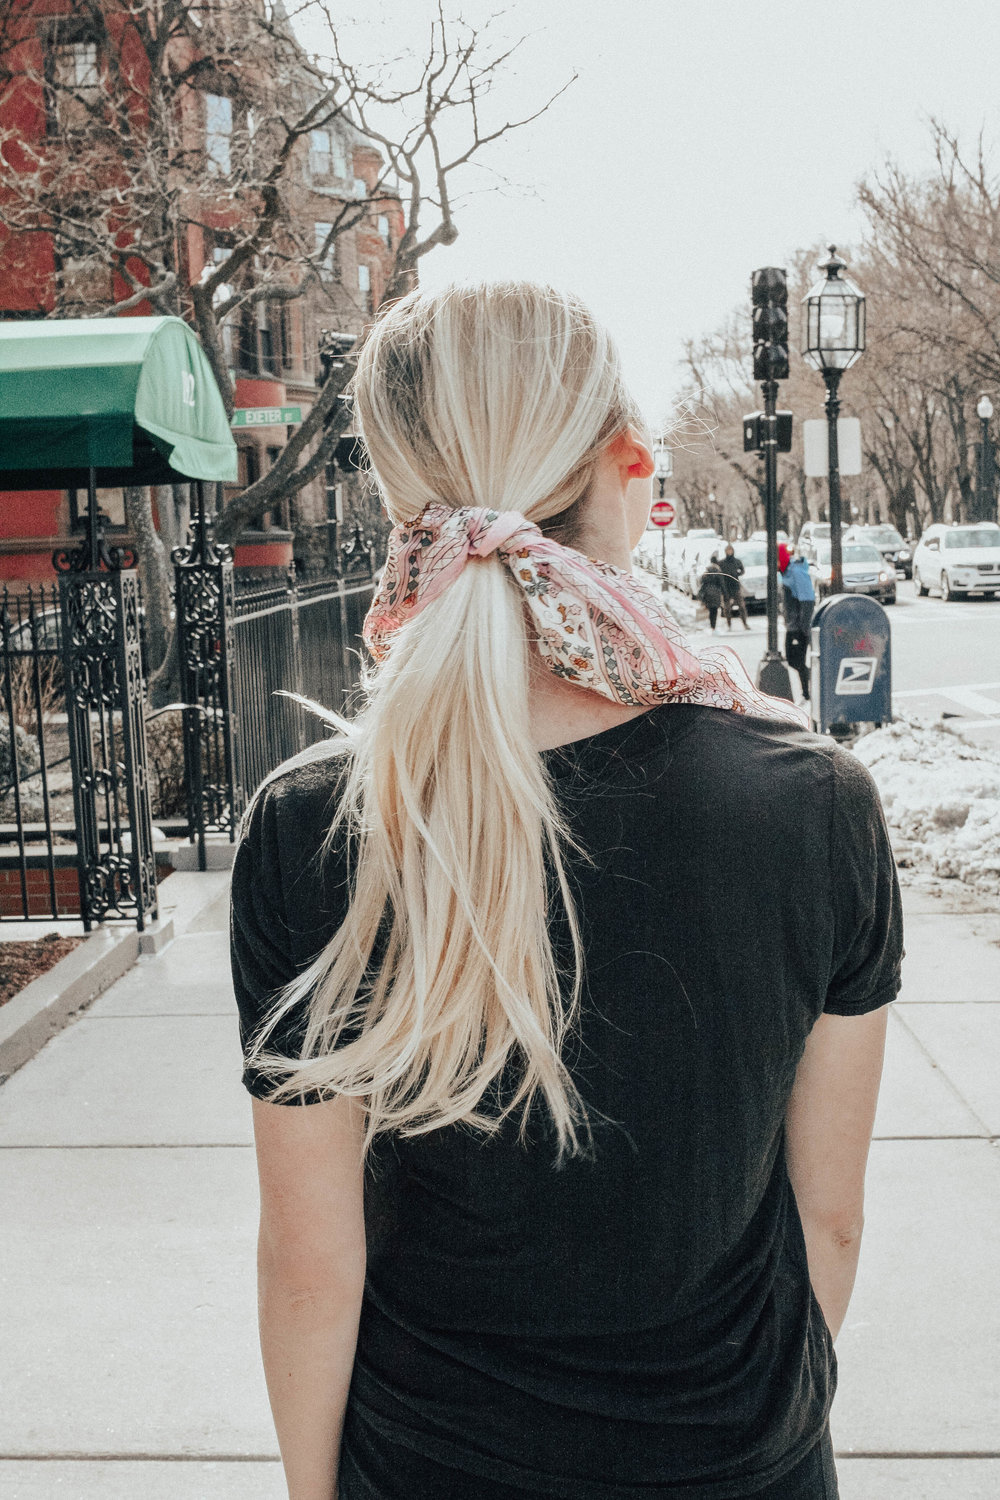 Scarf in Hair | @maevestier